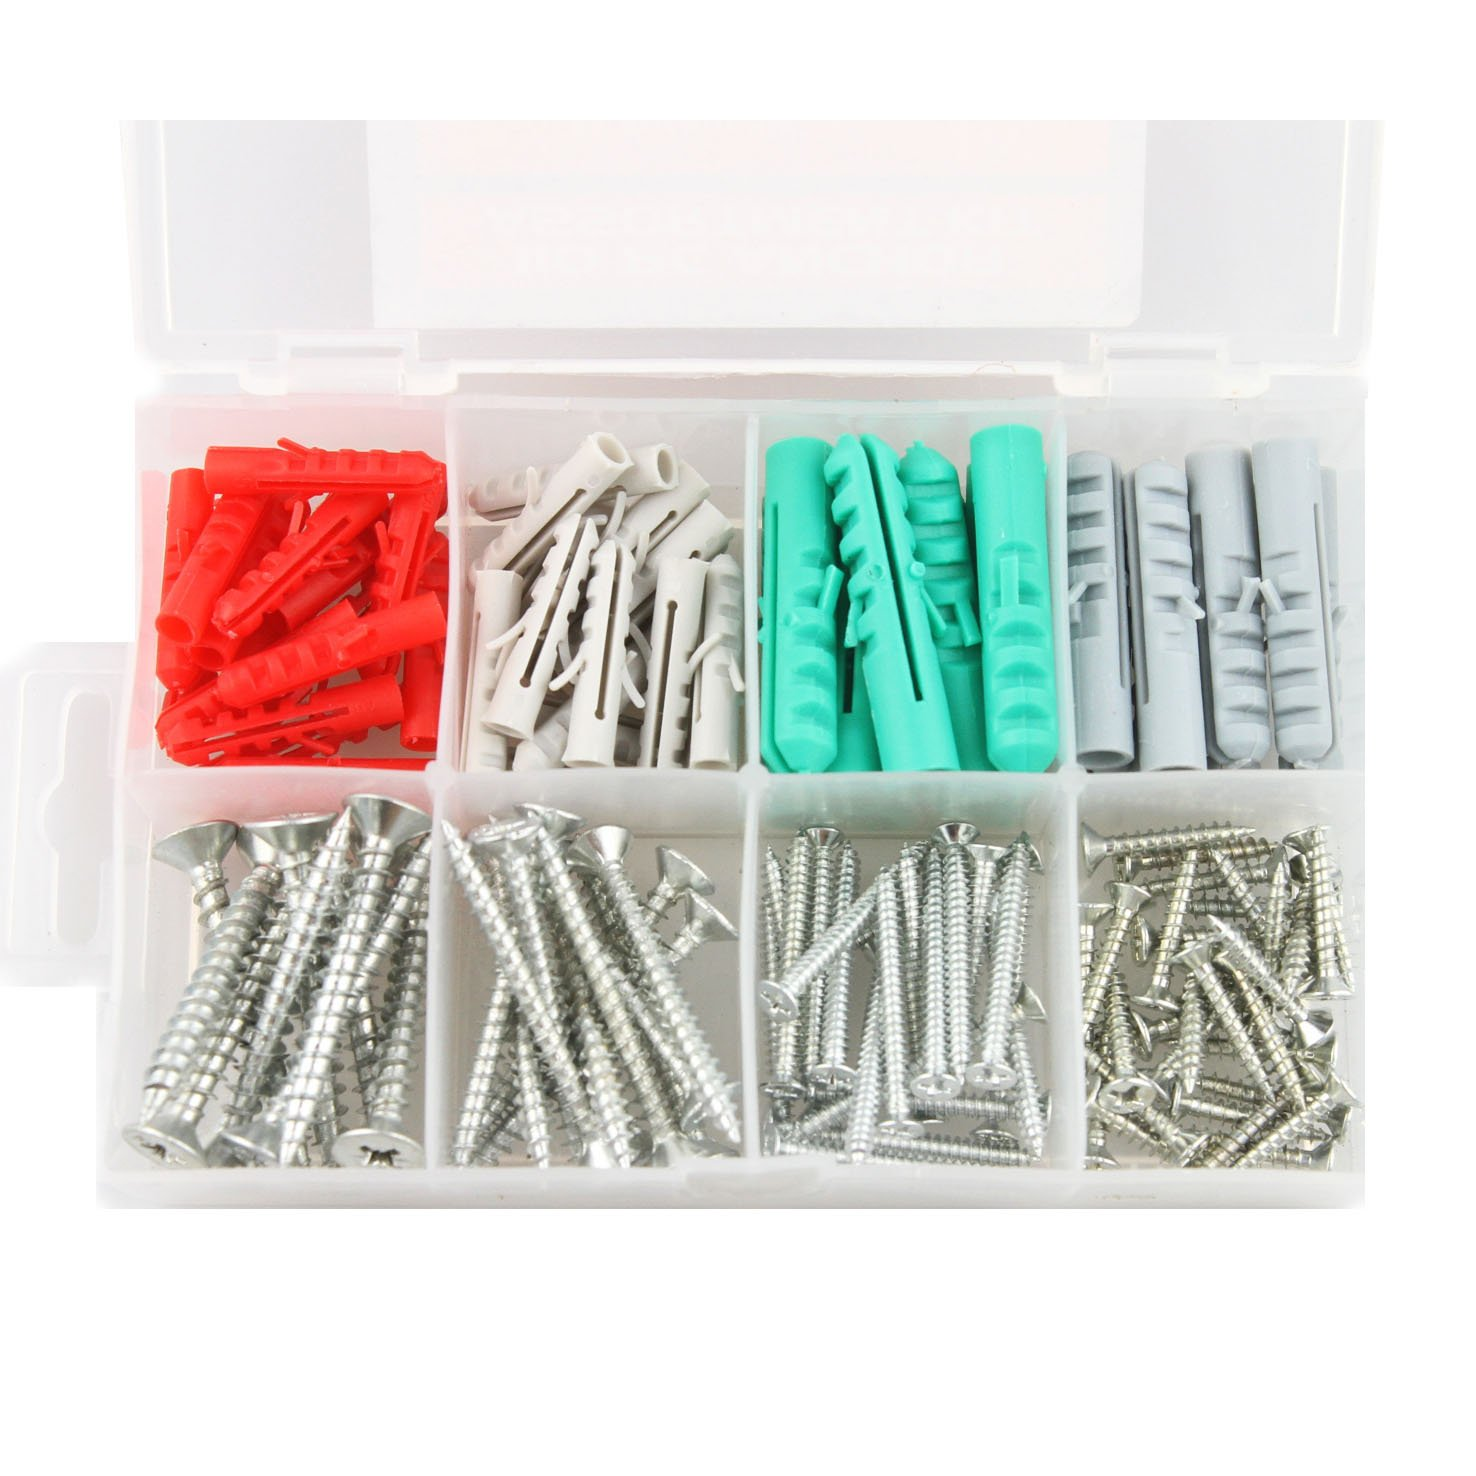 Self Drilling drywall anchors screw assortment, heavy duty drywall anchors with screws, molly bolts, sheetrock anchors (110 pcs plastic wall anchors and screws)